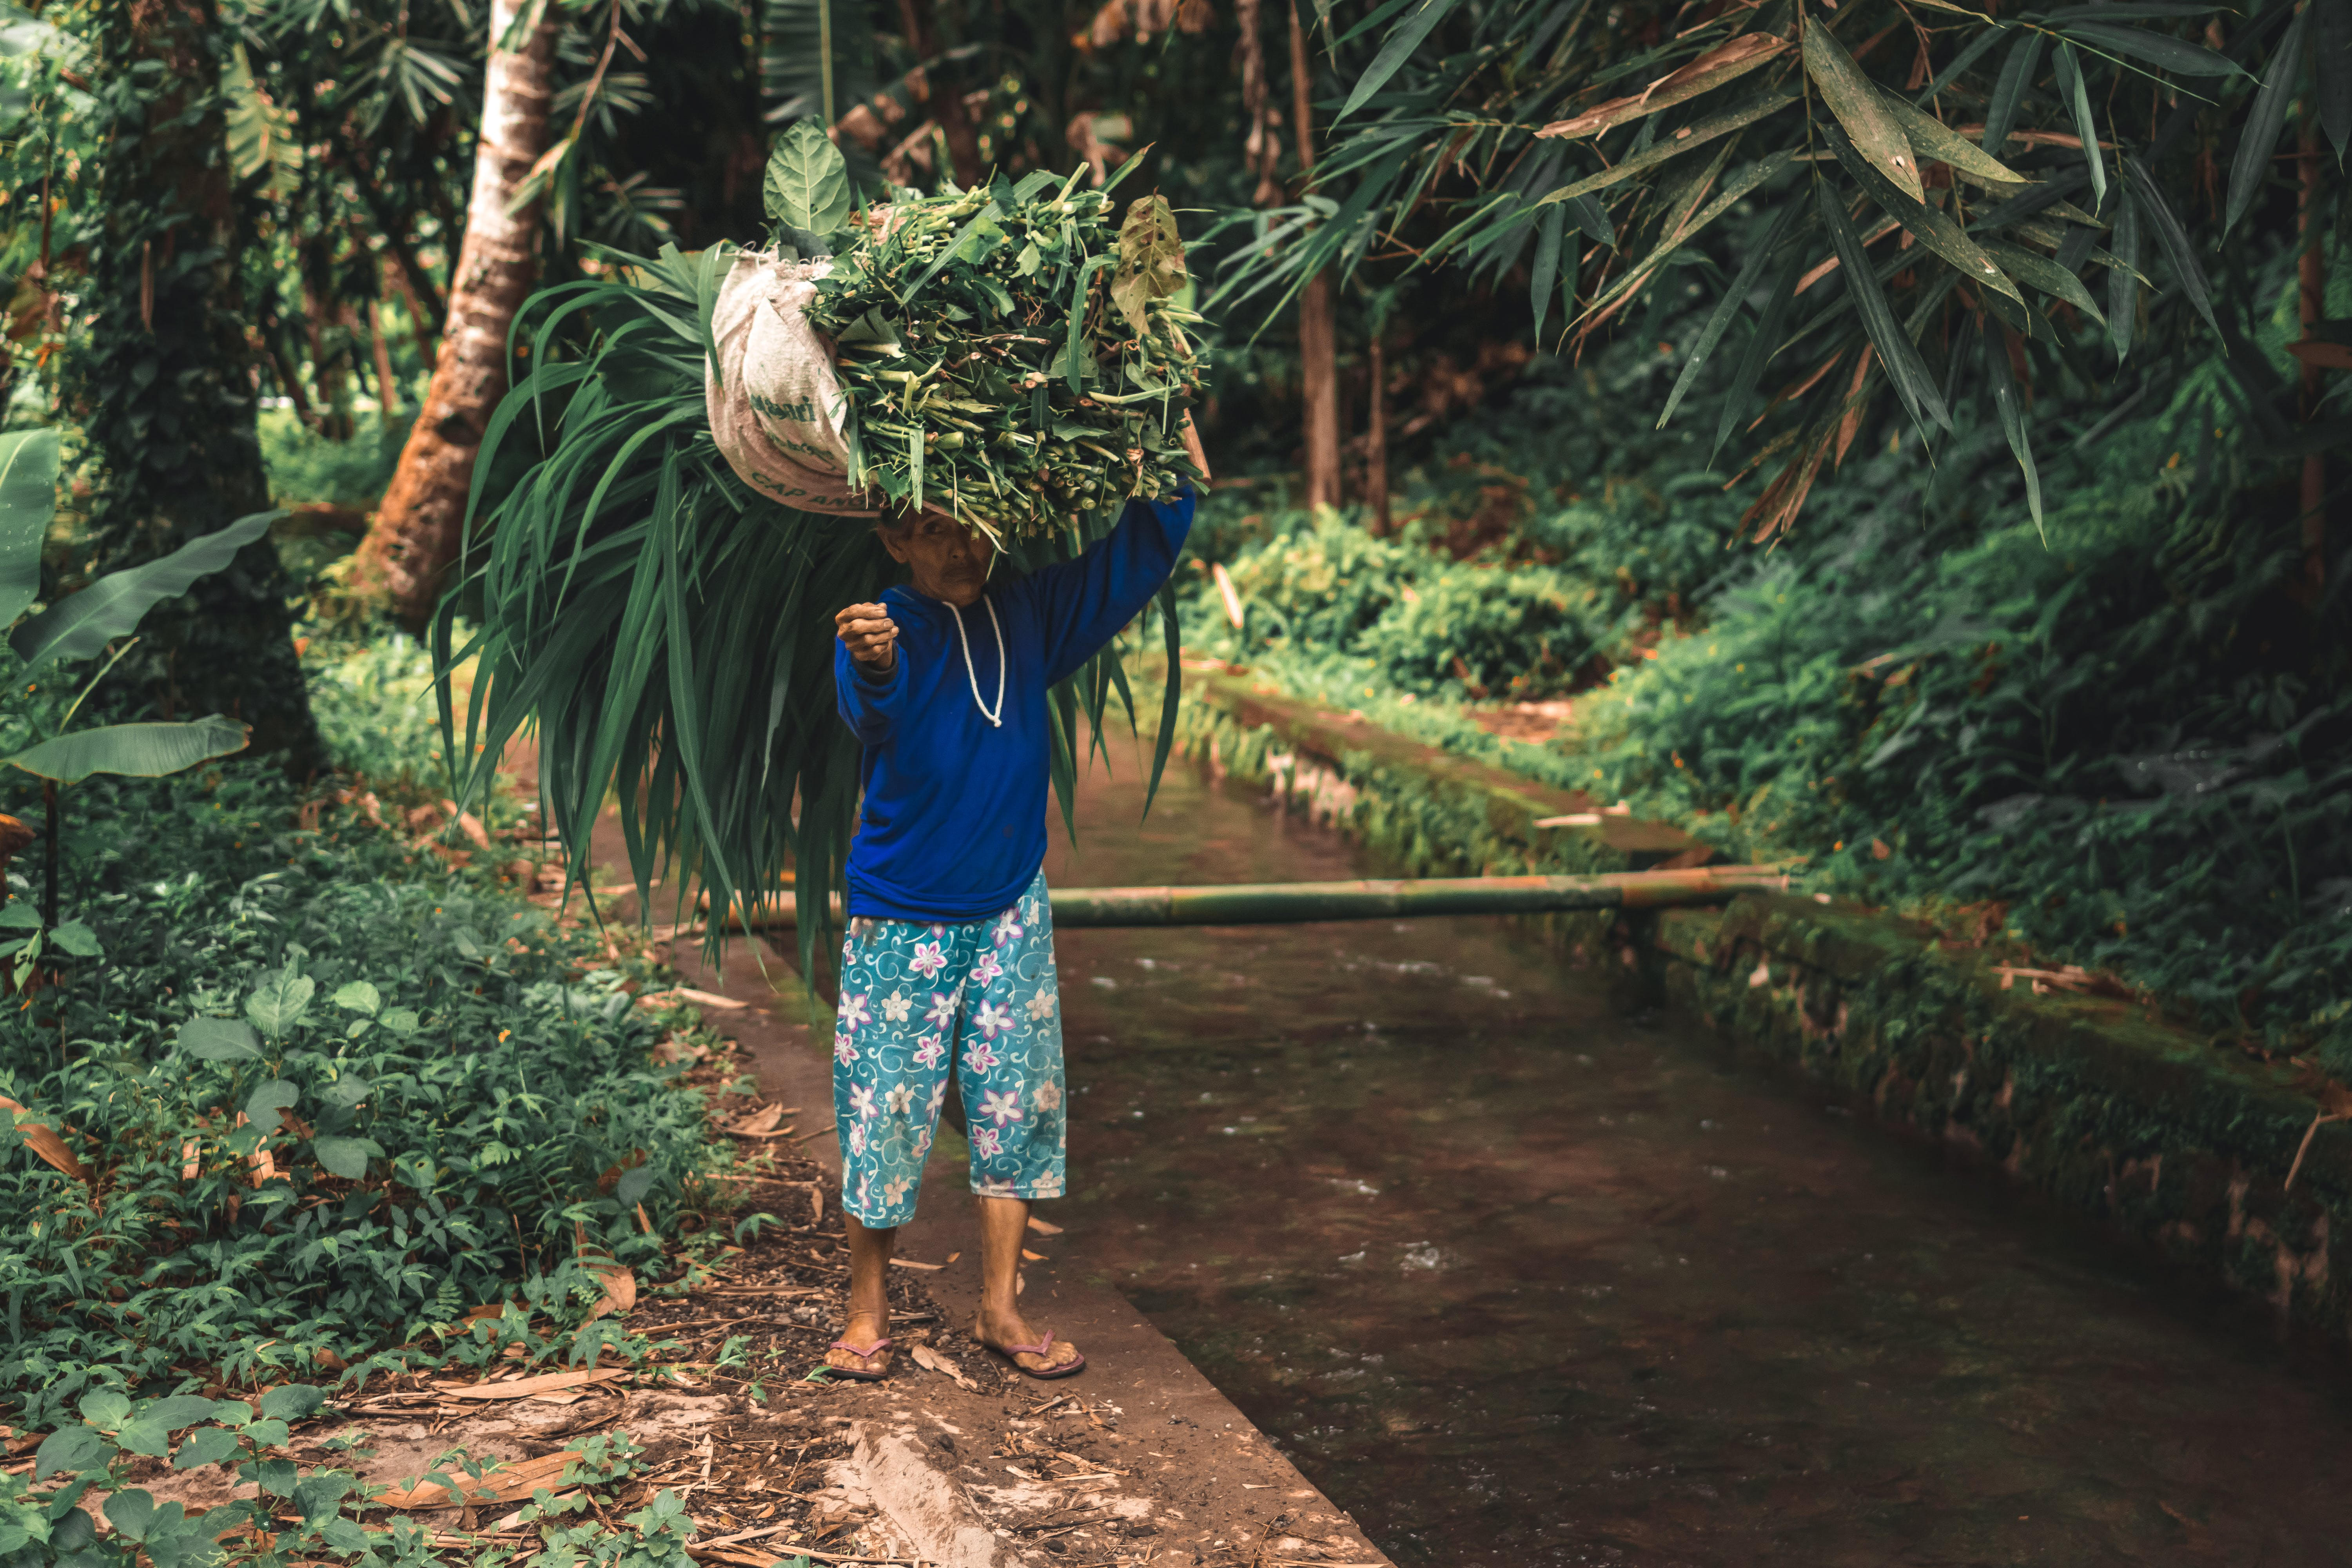 Man in Blue Long-sleeved Shirt and White and Green Floral Shorts Carrying Green Plants